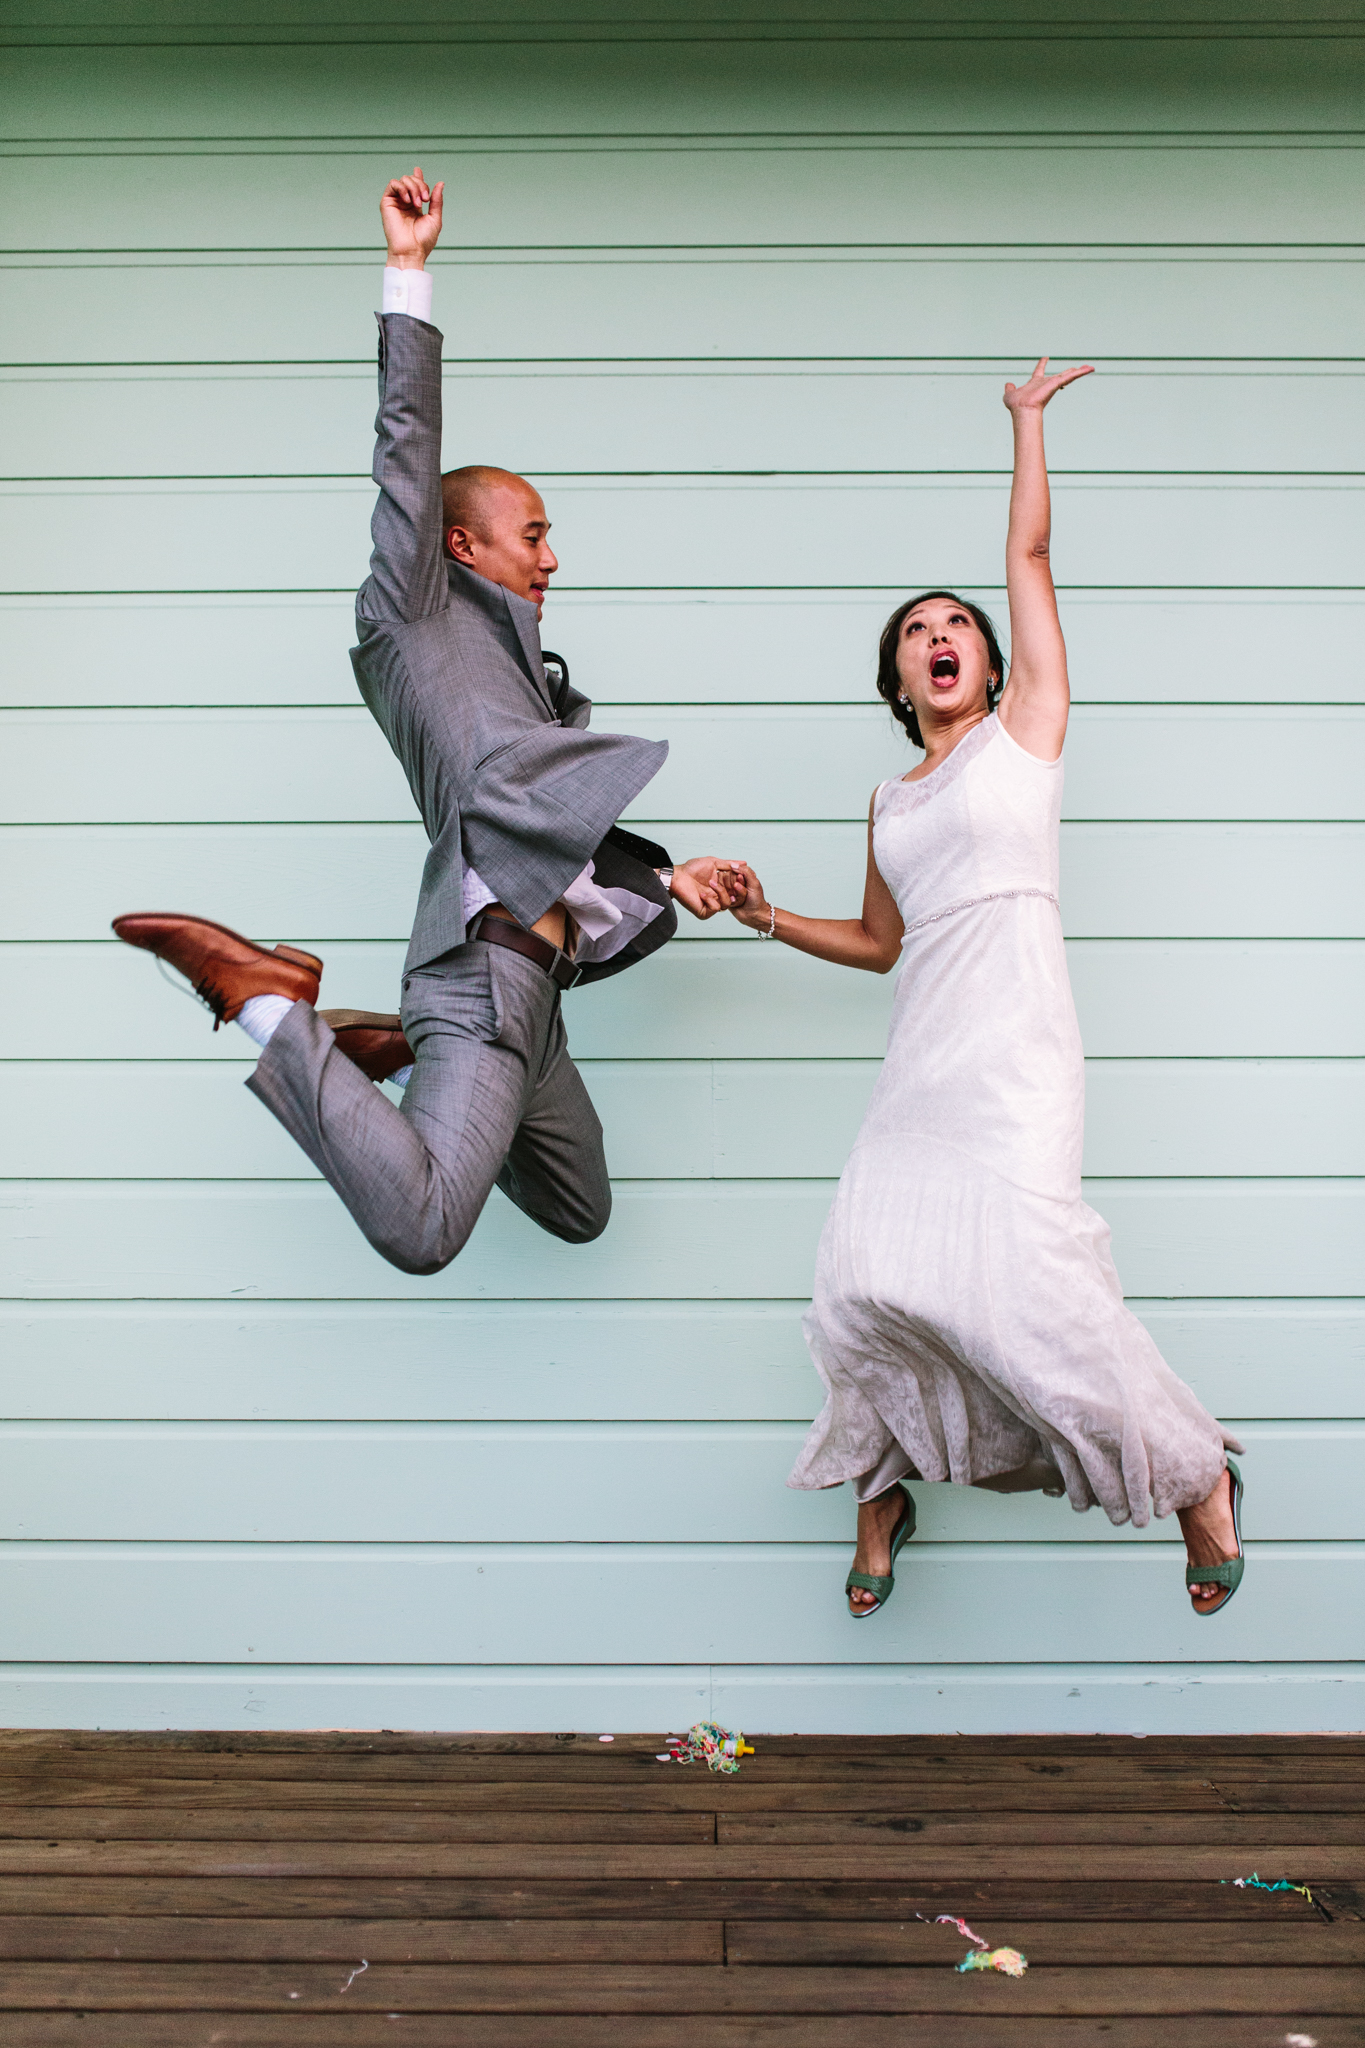 bride_groom_jump_1